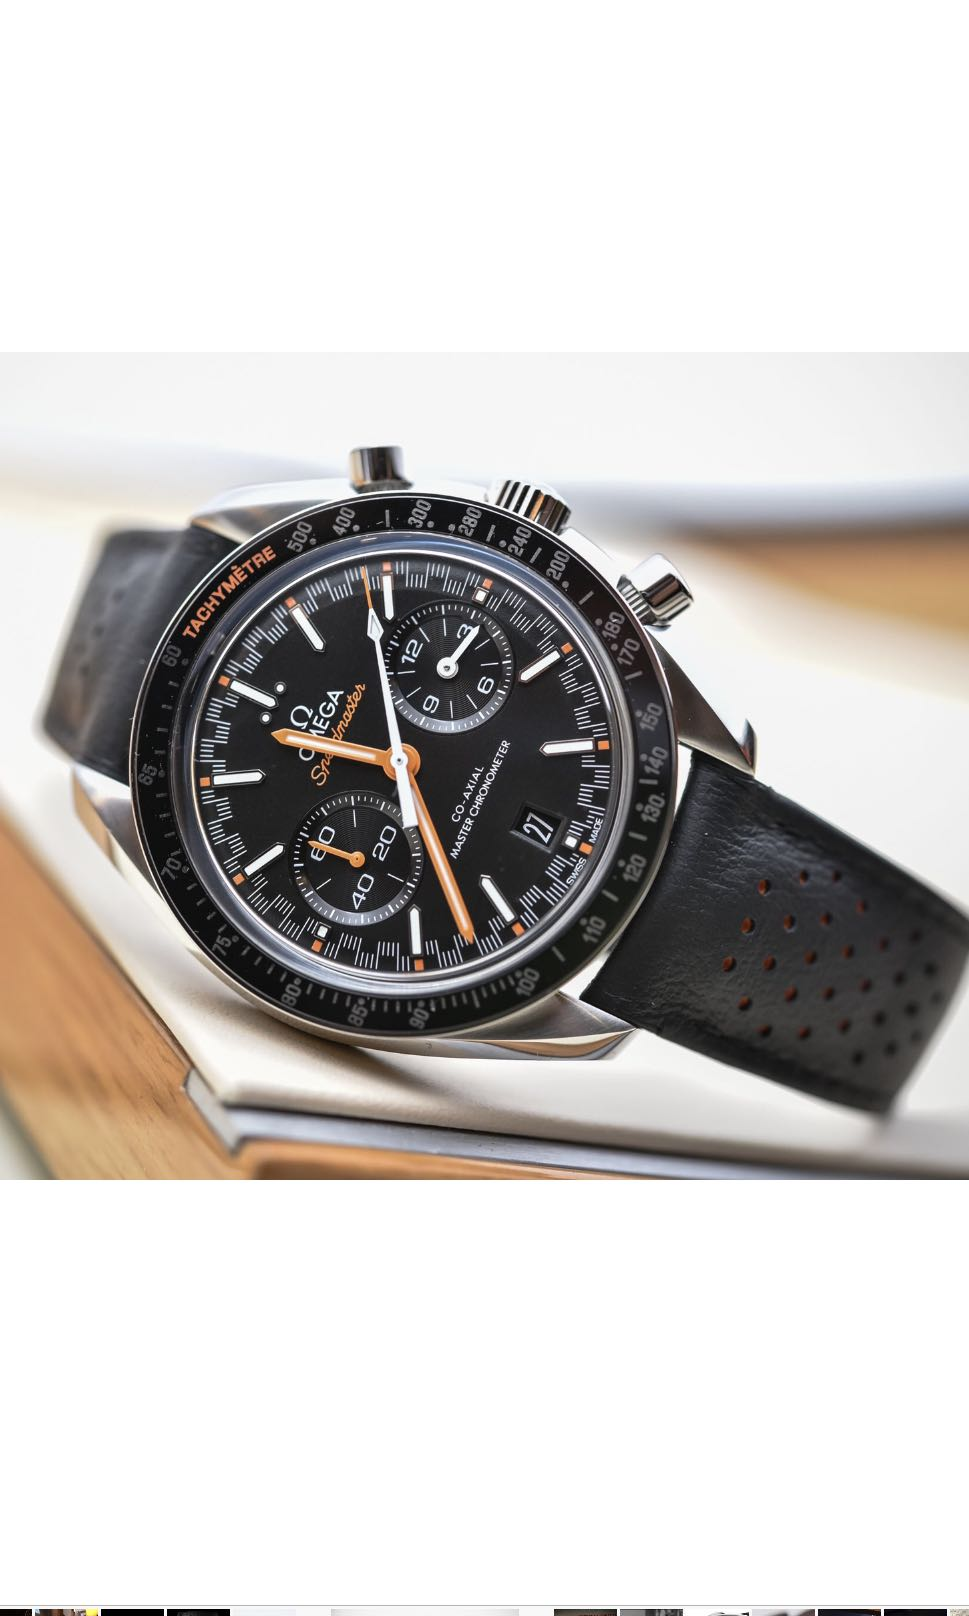 91dbce892 BNIB Omega Speedmaster Racing Co-Axial Master Chronometer 44.25mm  Chronograph with FREE DELIVERY 📦, Luxury, Watches on Carousell